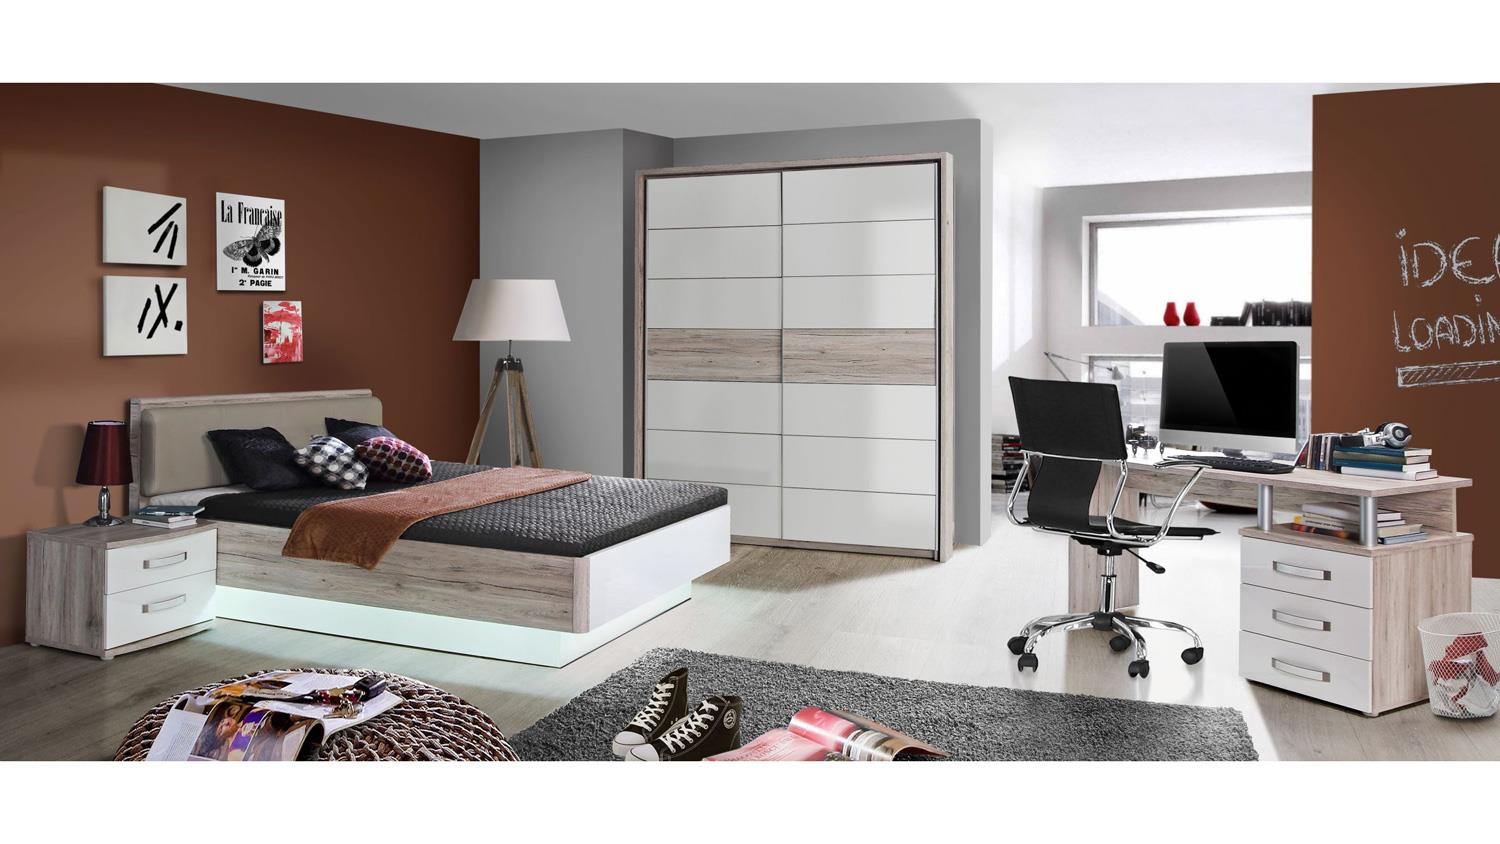 jugendzimmer rondino komplett set in sandeiche und wei hochglanz. Black Bedroom Furniture Sets. Home Design Ideas